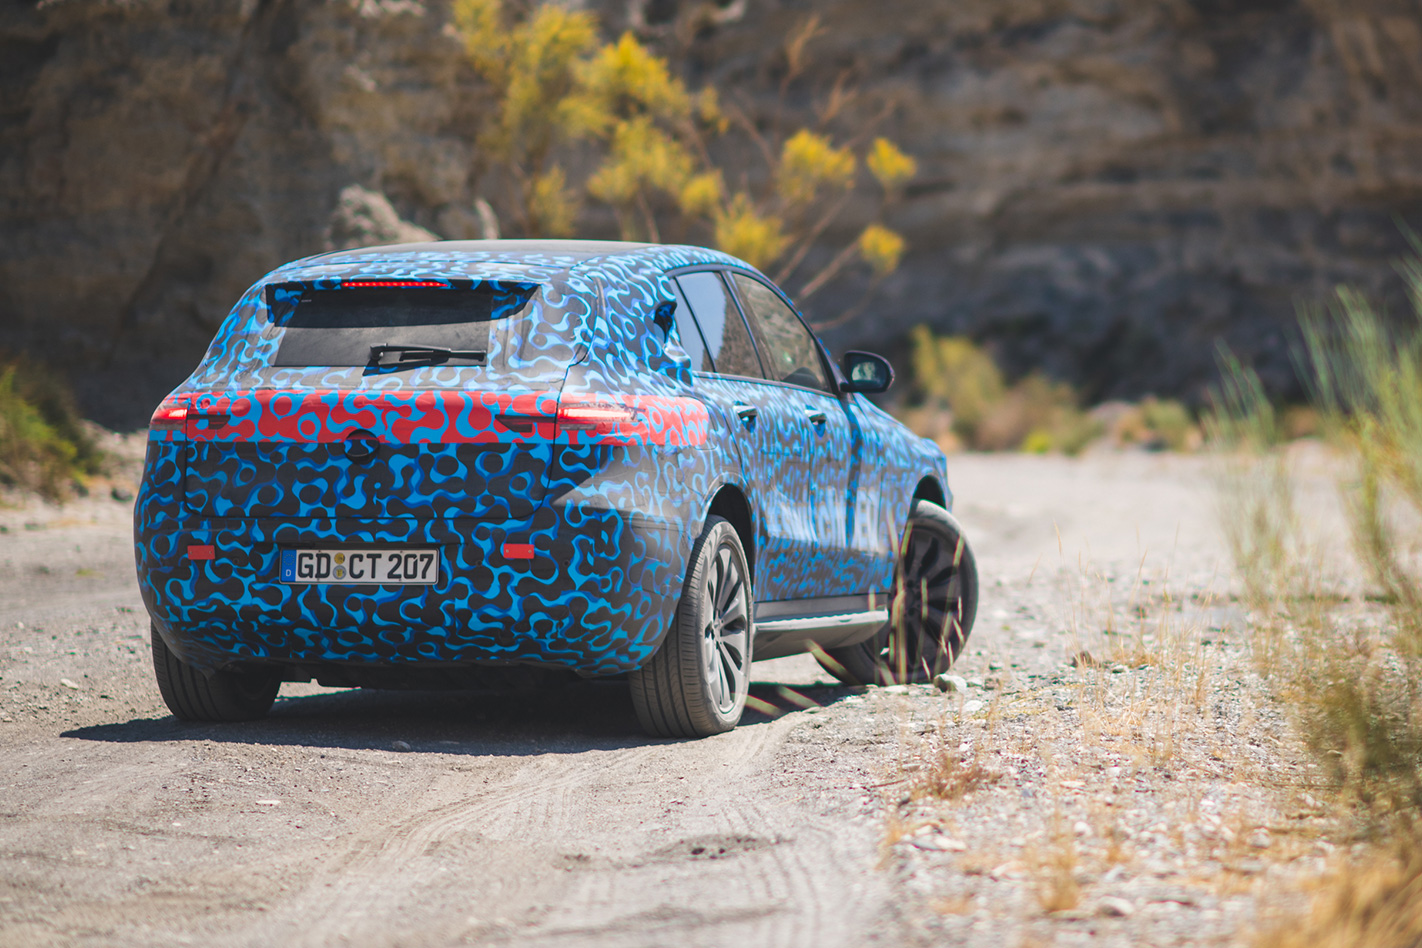 Mercedes Benz Eqc Prototype Ride Electric Vehicle Basics The Prototypes Unseen Drivetrain And Chassis Components Are Production Specification Hermsen Happily Confirms Technical